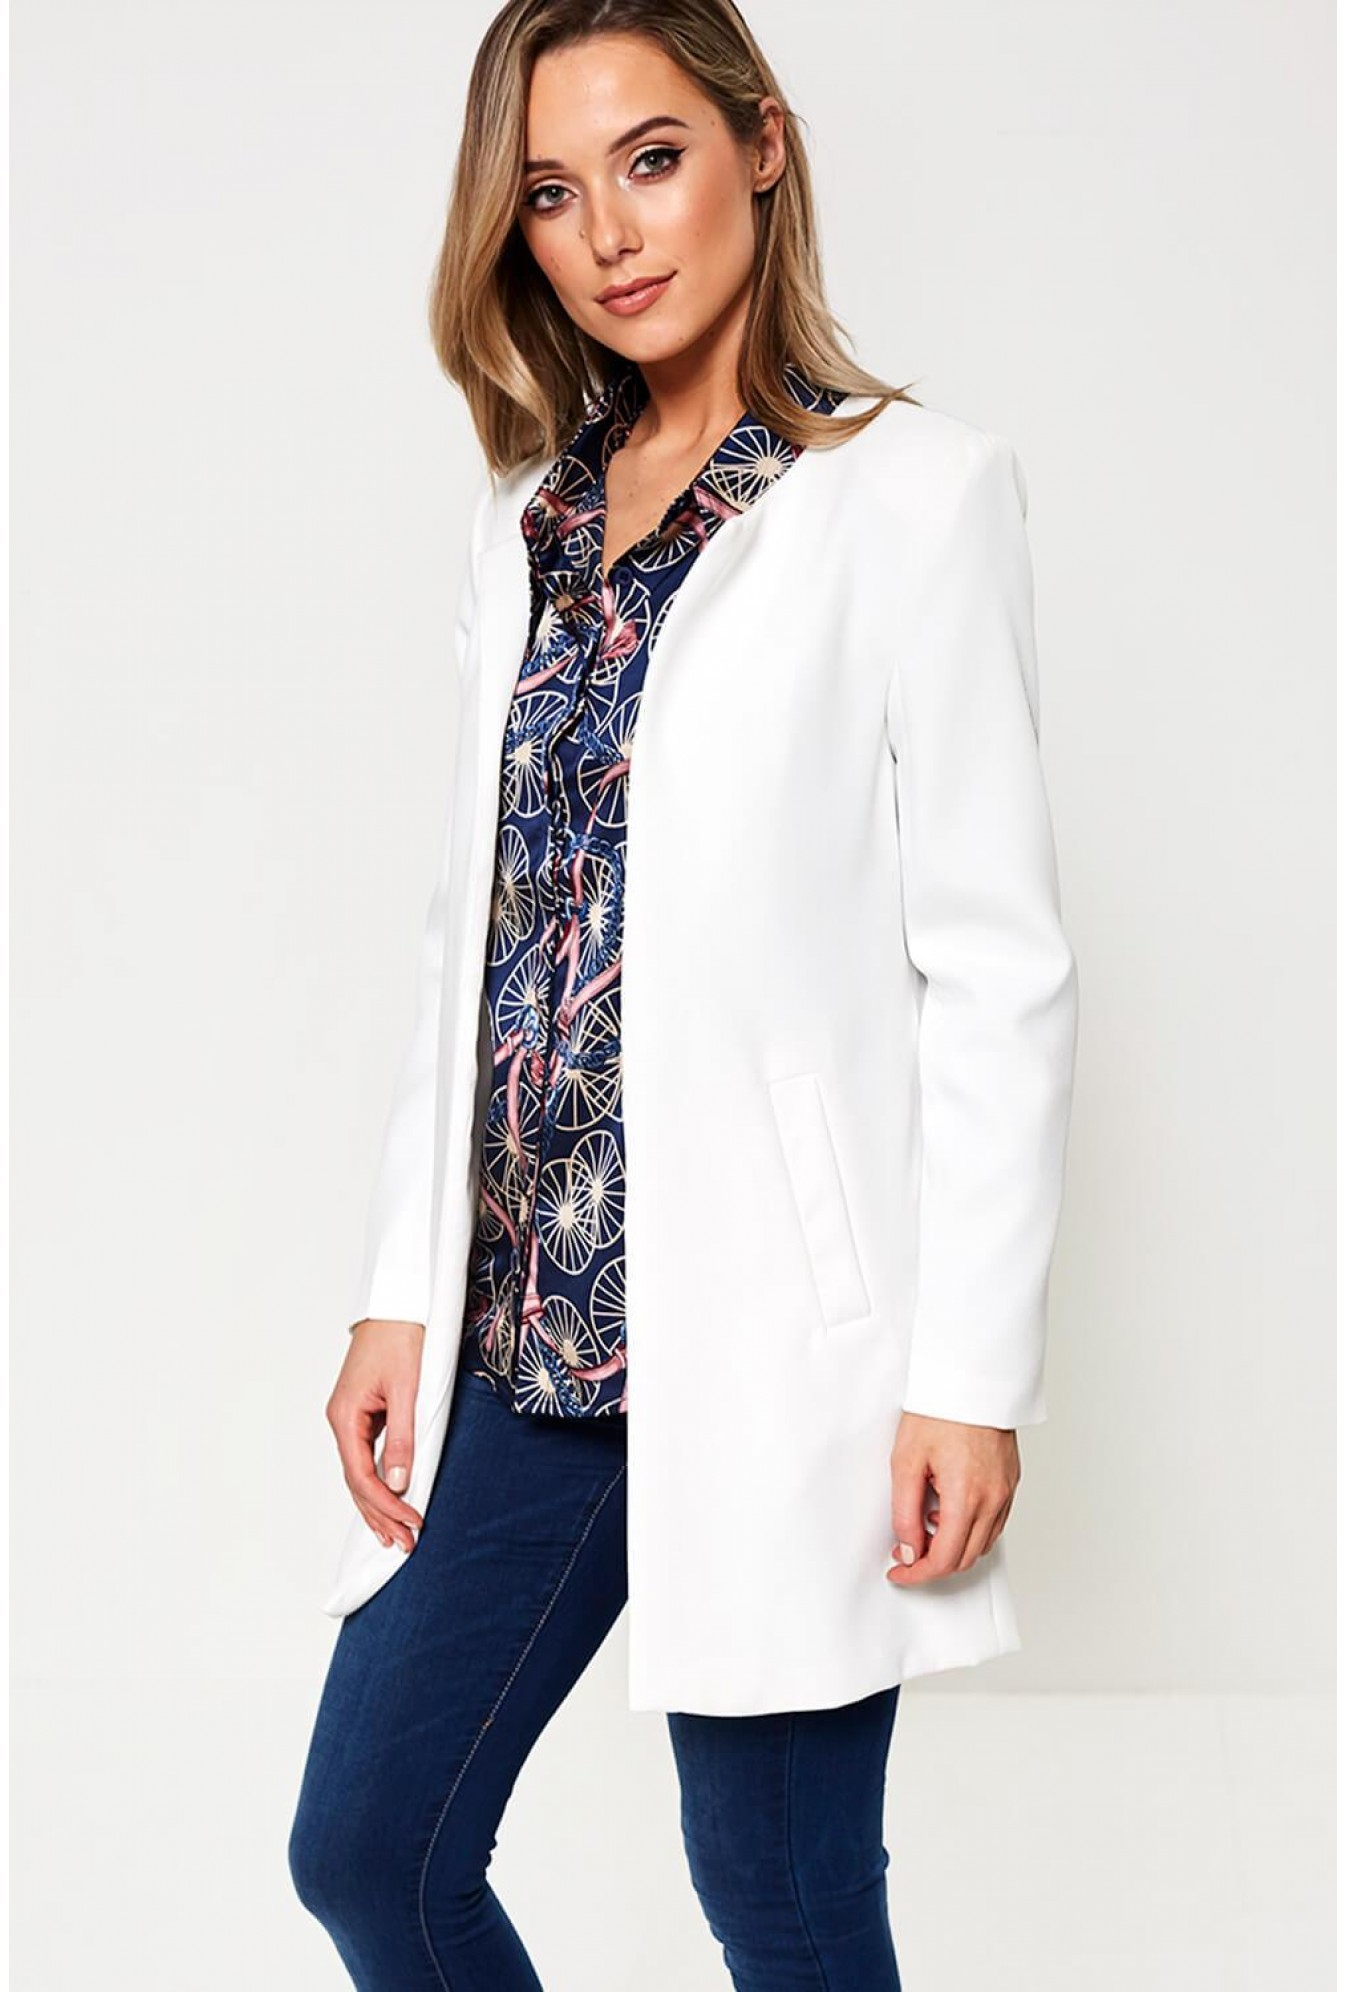 b1e7216d5cde Marc Angelo Aria Longline Blazer in Off White | iCLOTHING